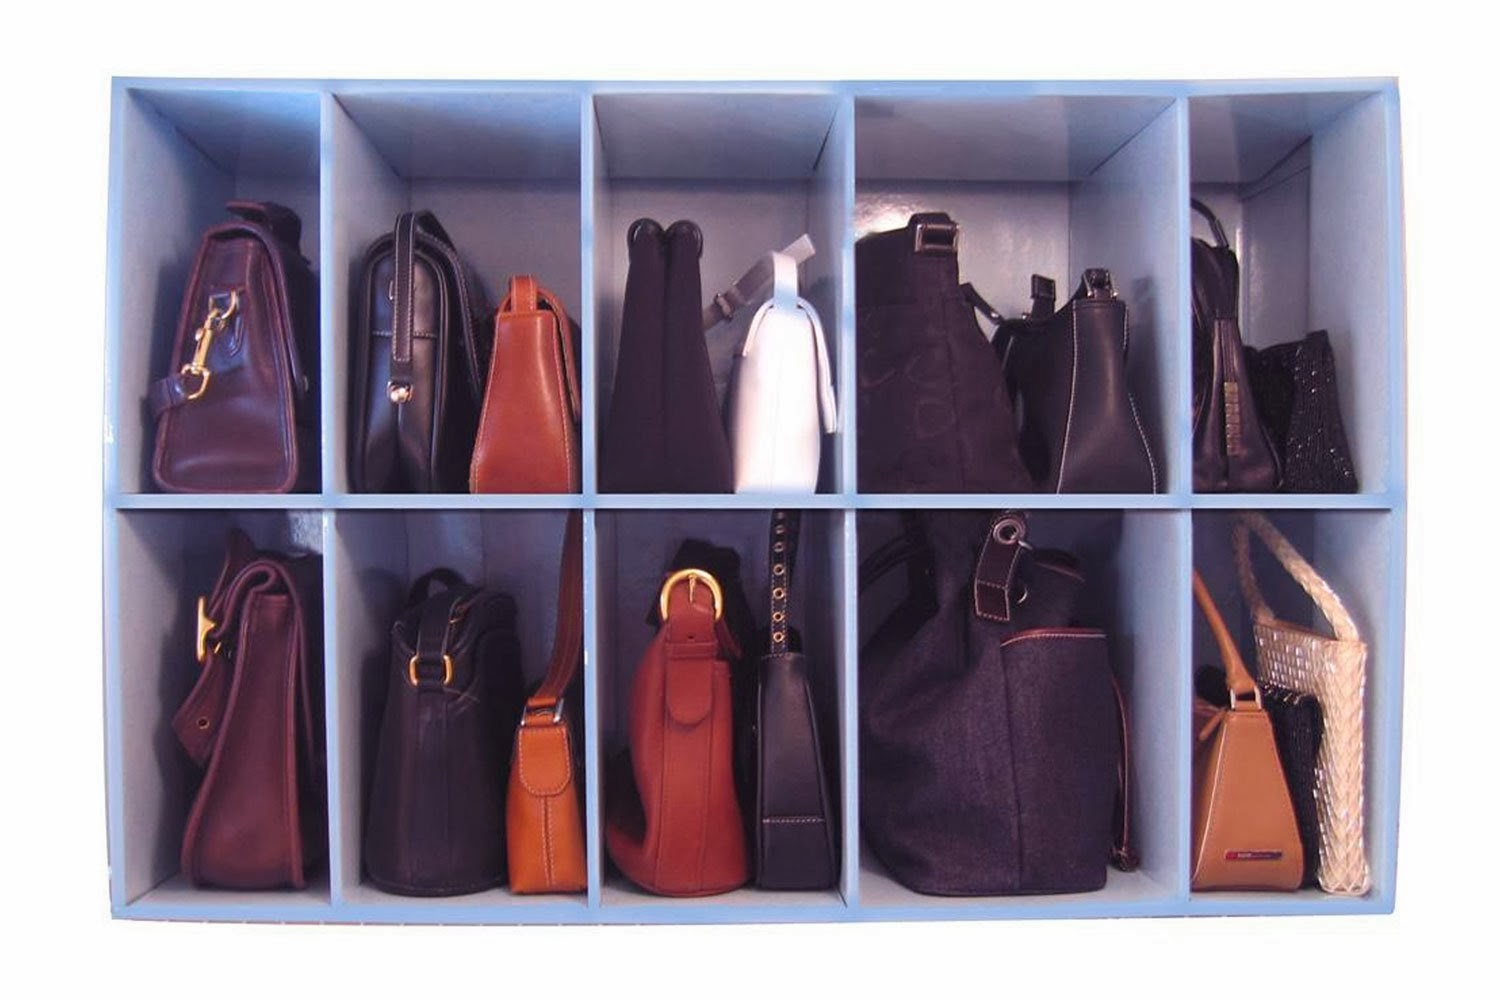 11 Ways To Organize Your Purse Organizing Made Fun 11 Ways To